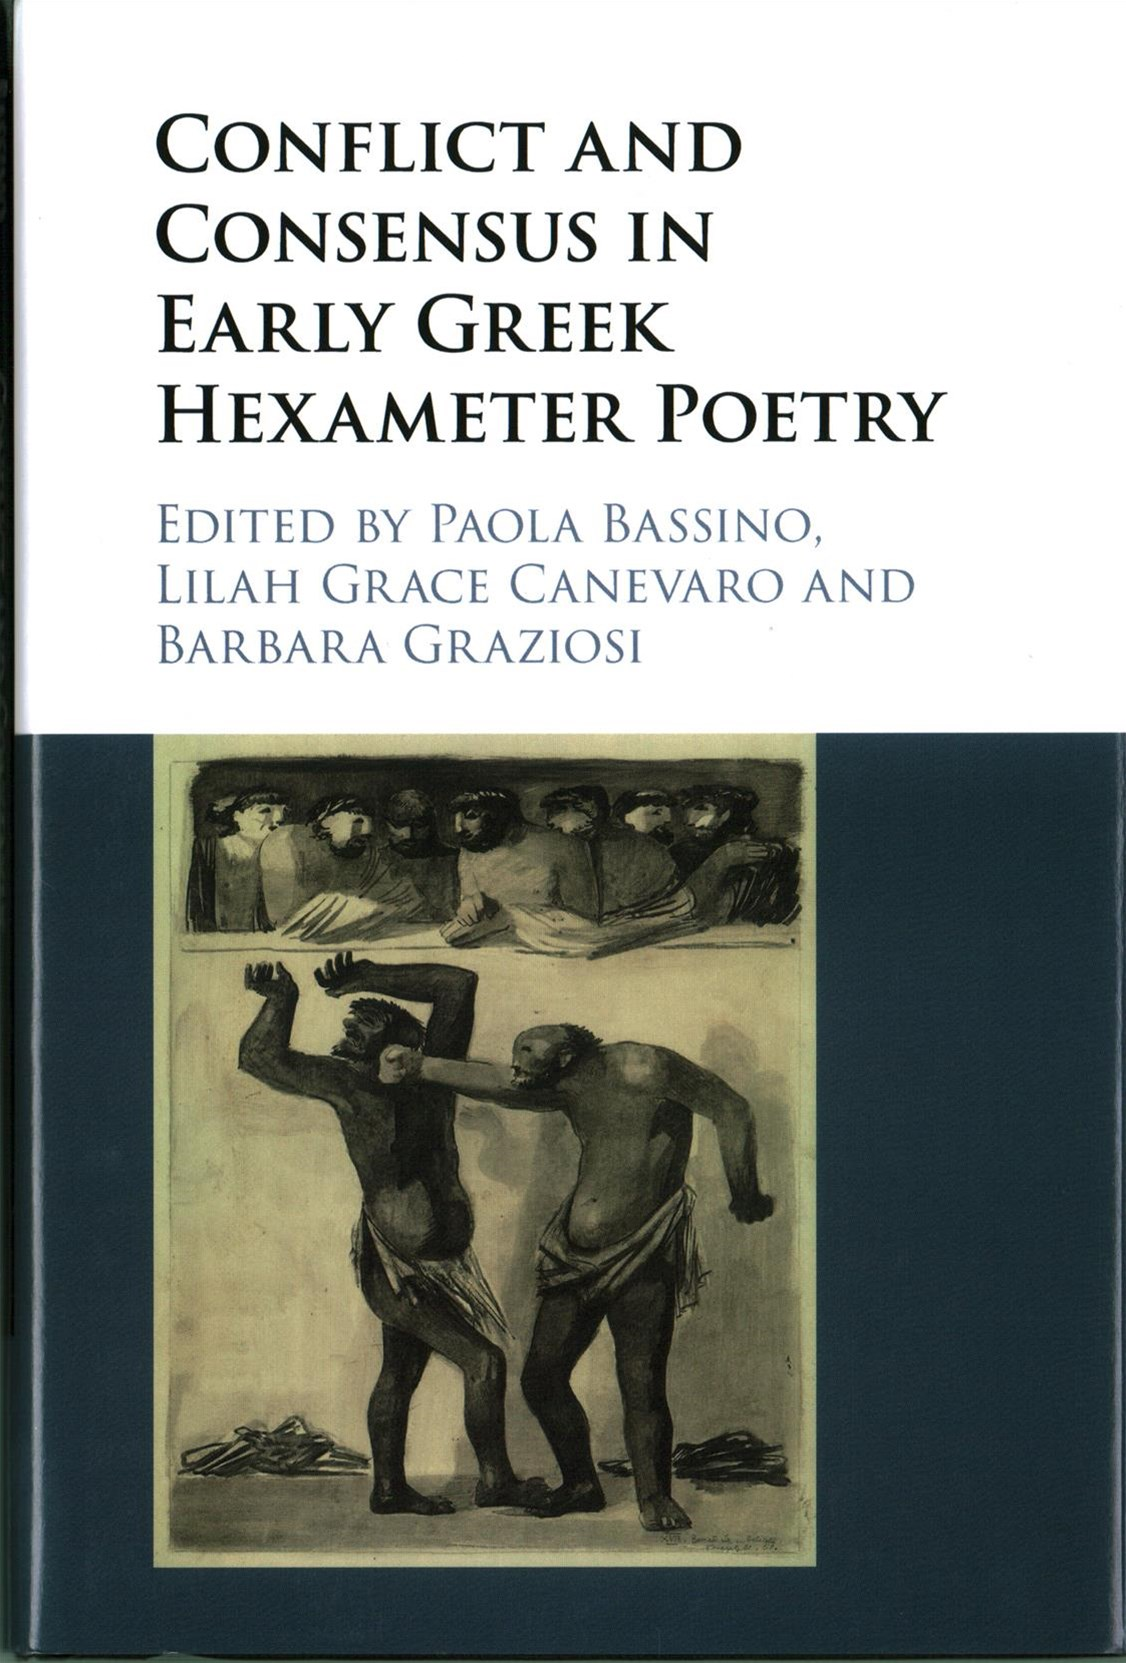 Conflict and Consensus in Early Greek Hexameter Poetry